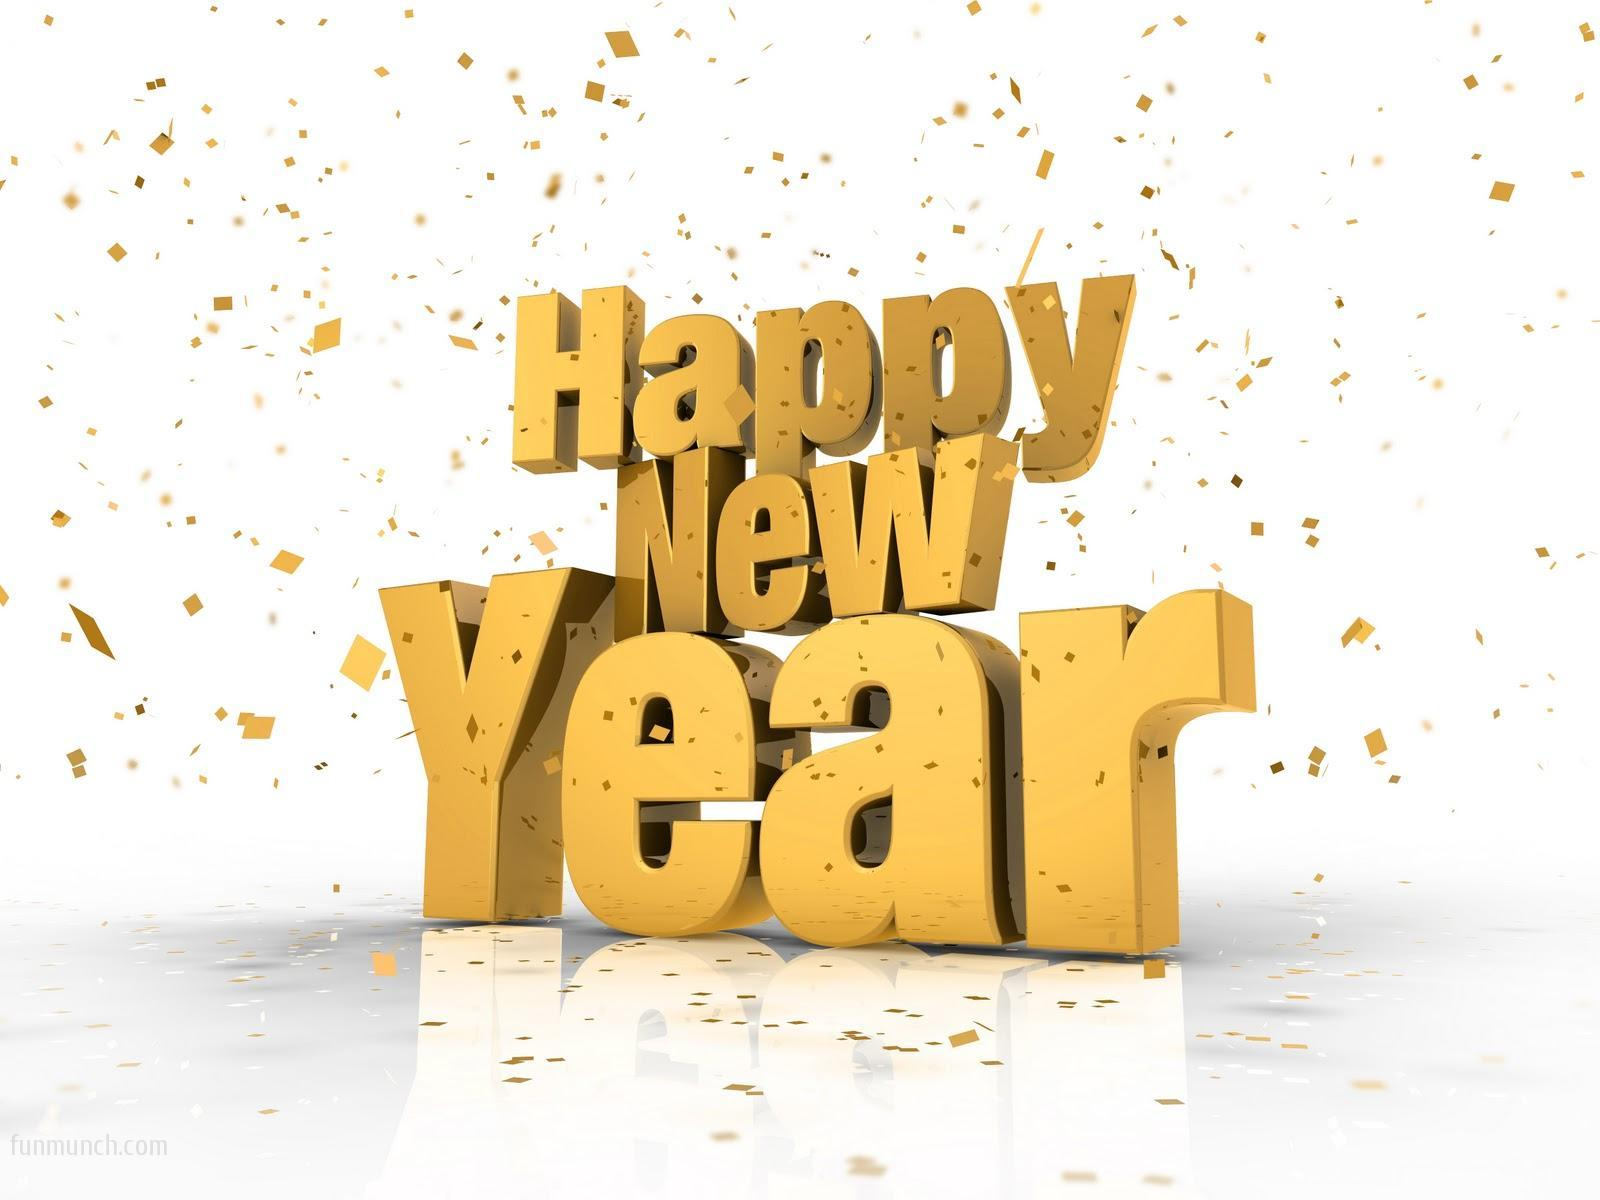 happy new year greetings wishes pc desktop latest hd wallpaper